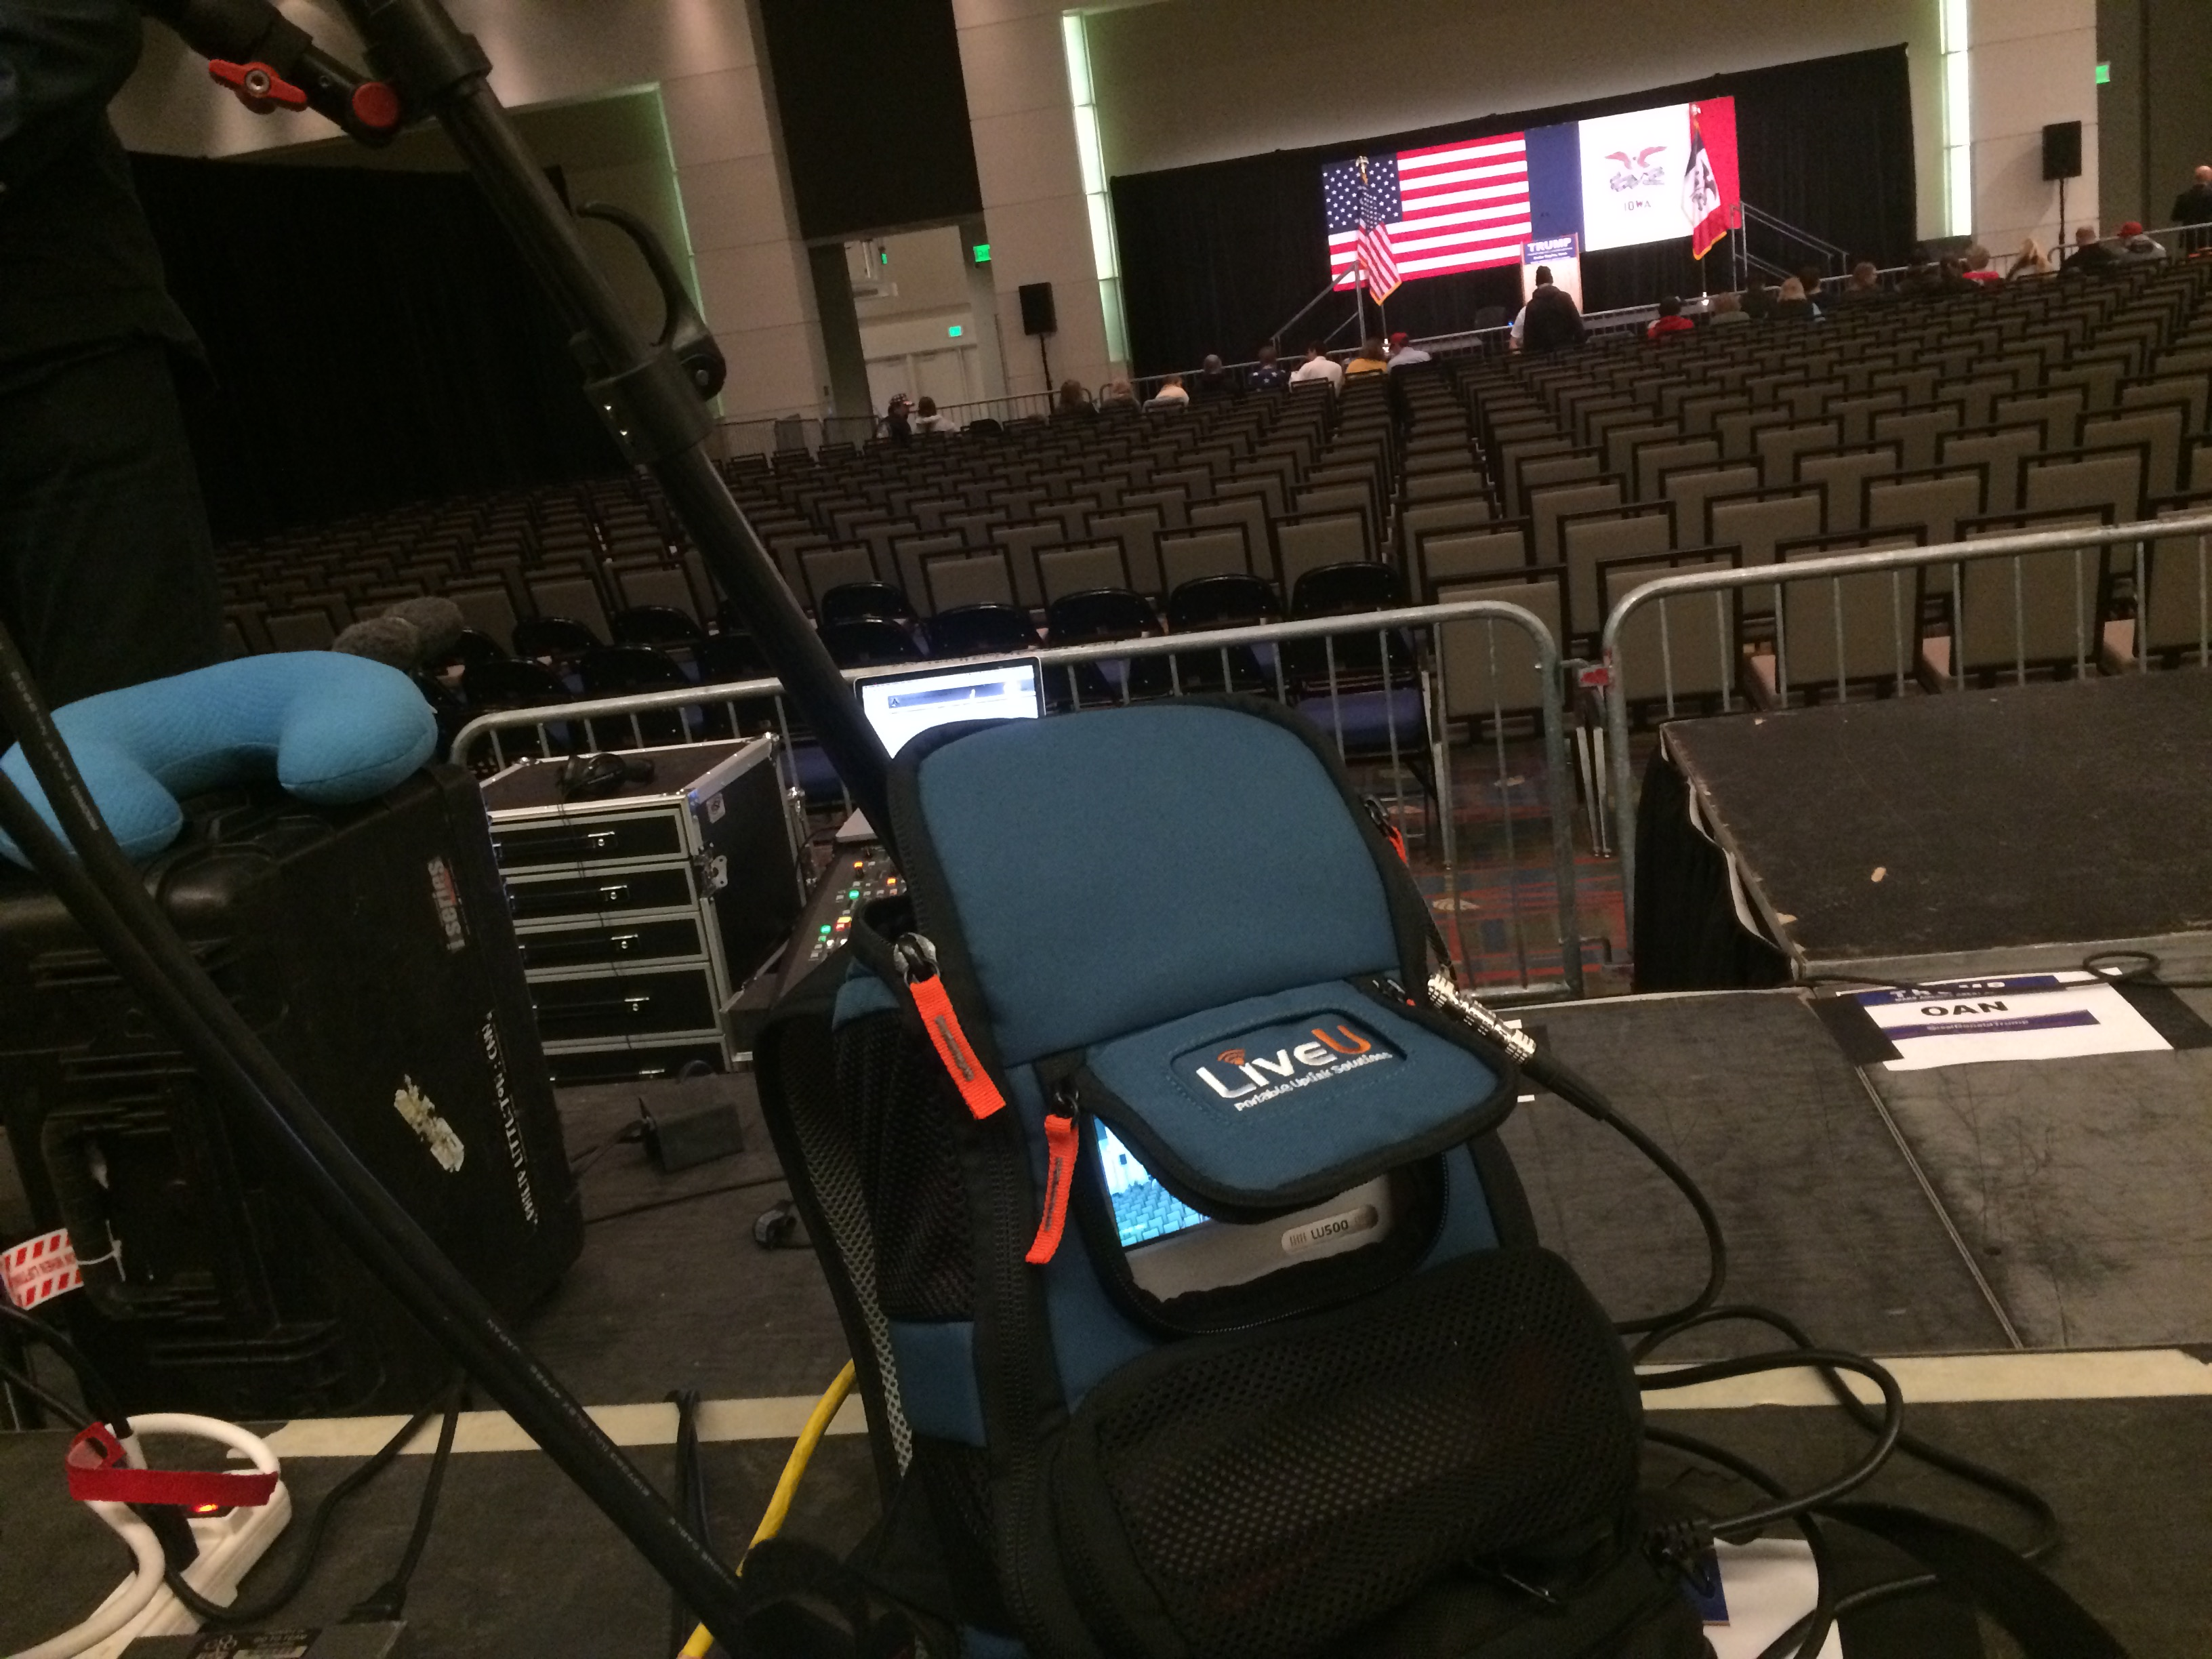 IMG 4515 Chicago Crew Runs for LiveU at Iowa Caucus